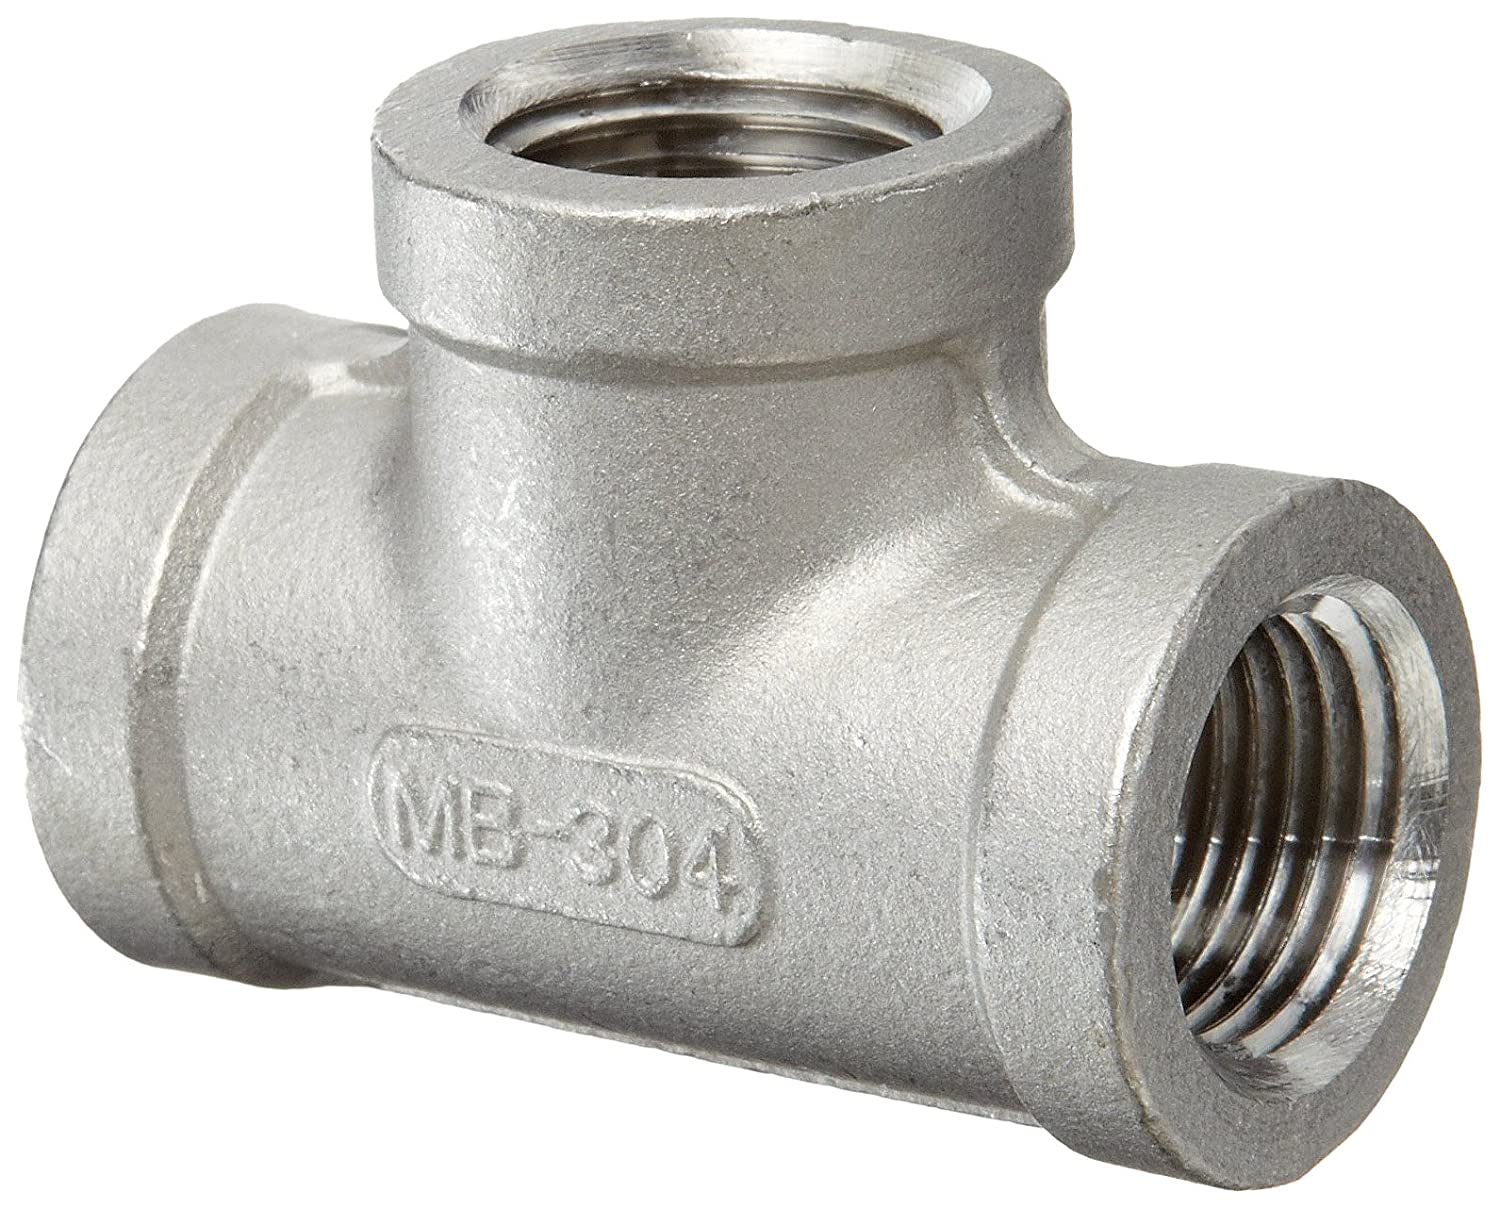 Stainless Steel 304 Cast Pipe Fitting 1 NPT Female Tee ISO 49 K406-16 Class 150